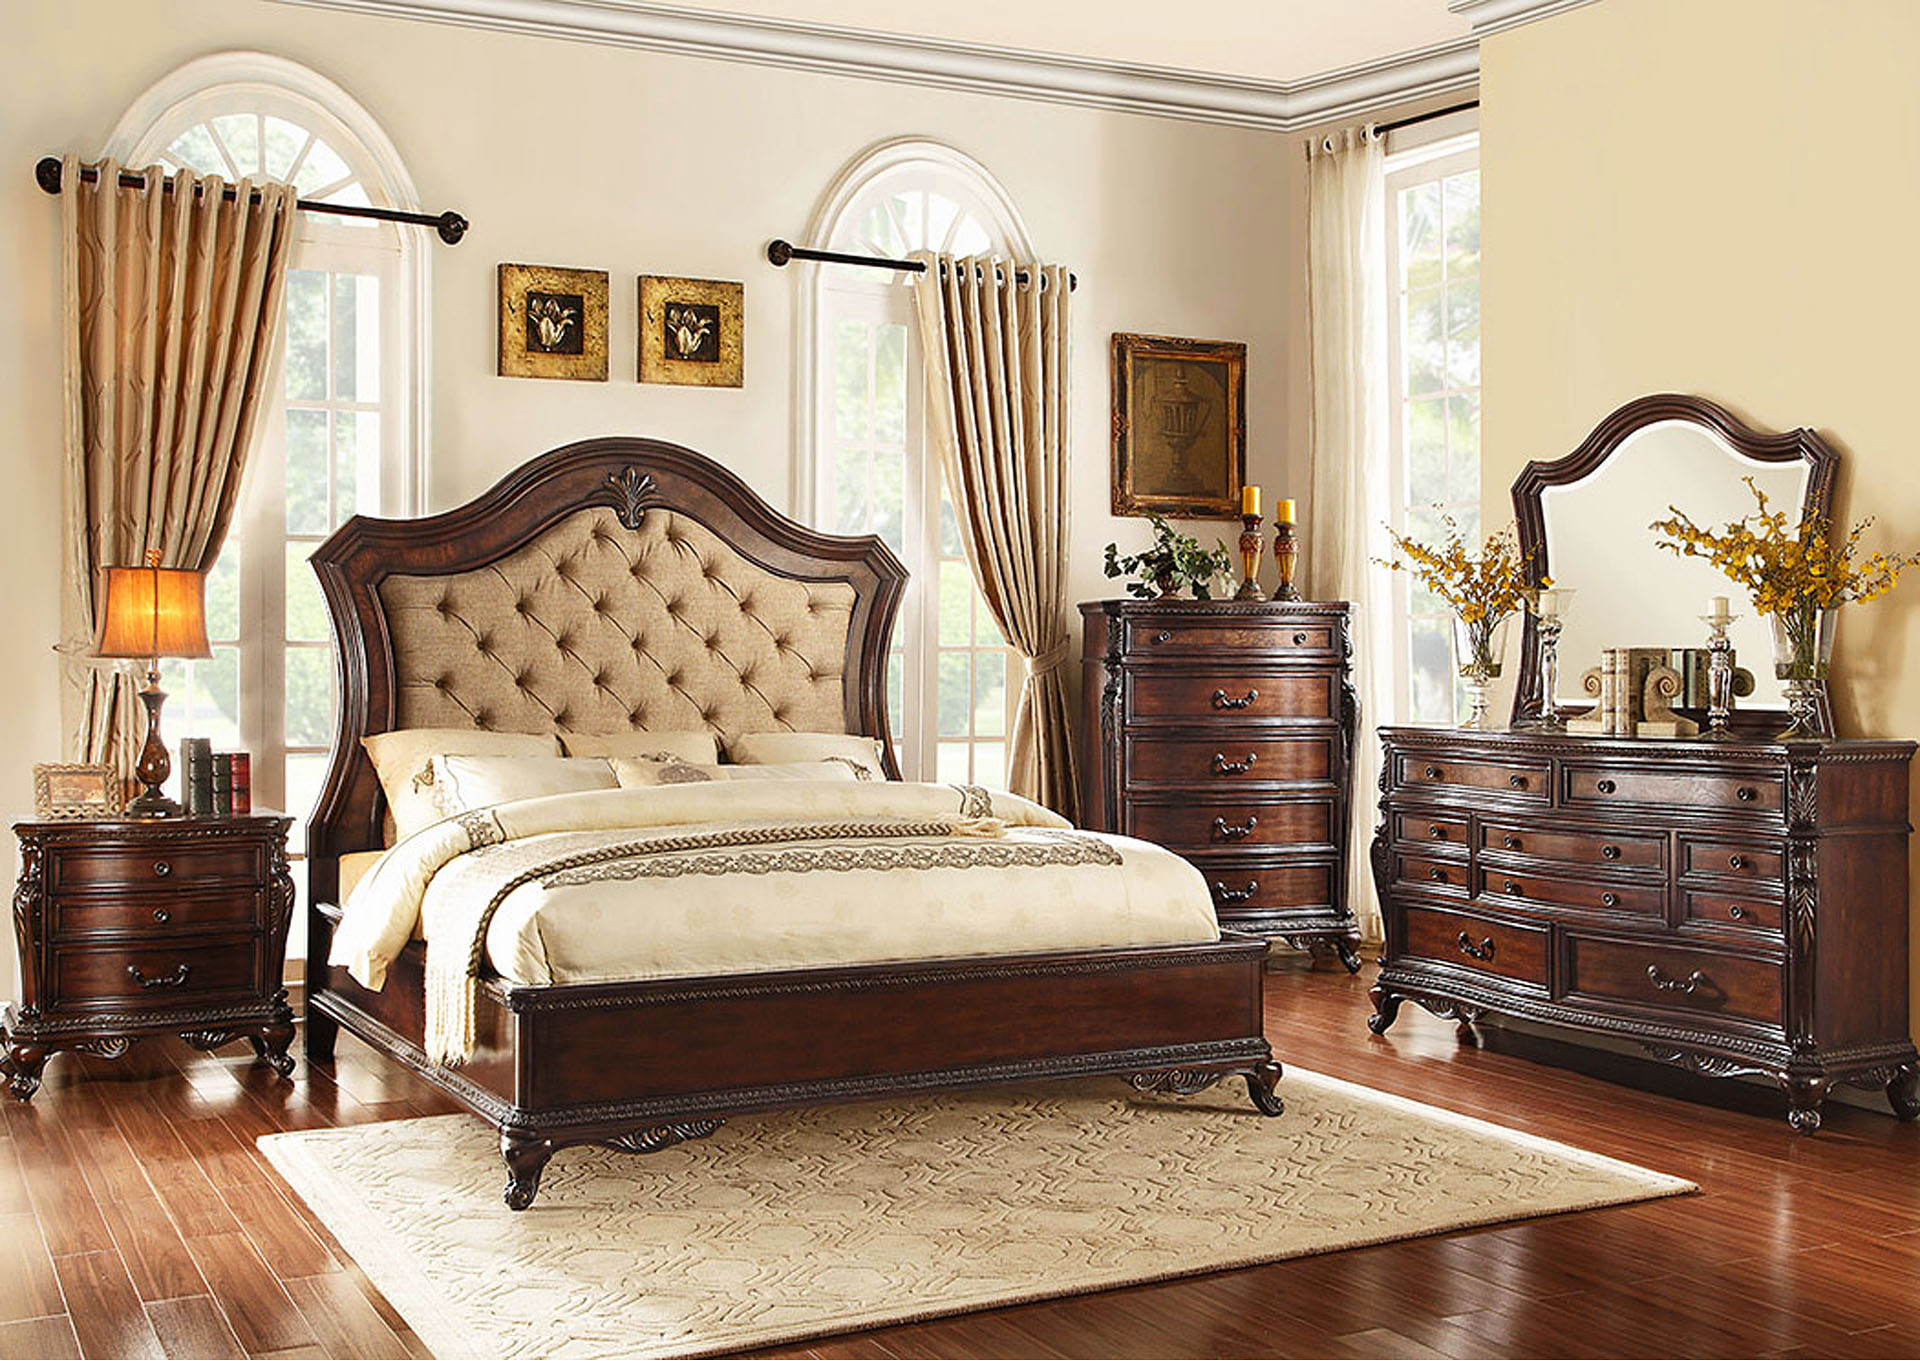 Queen Bed, Fabric,Homelegance